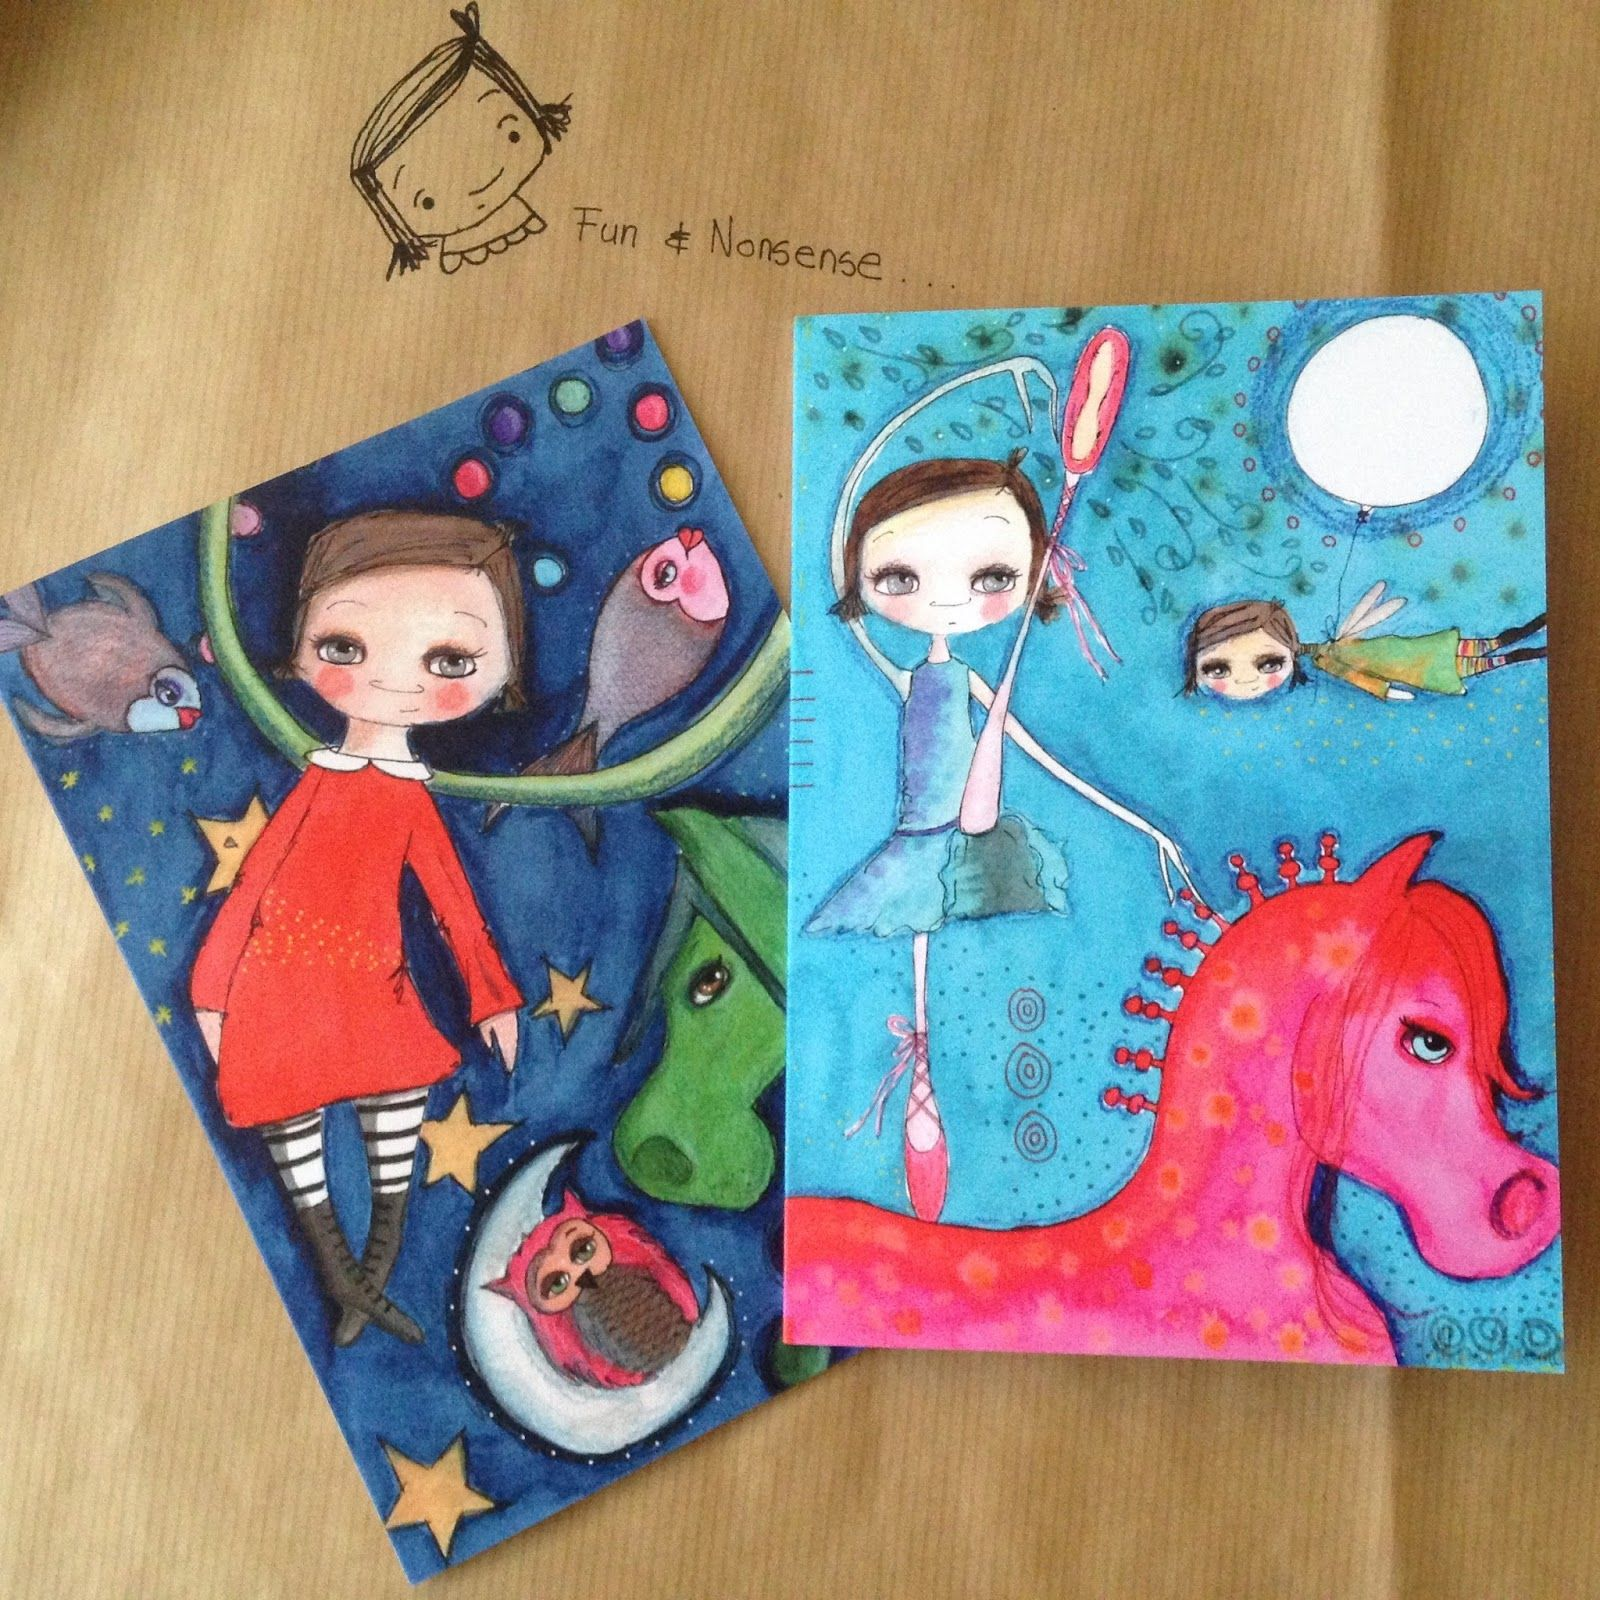 Roll up roll up fun nonsense blank greeting cards are here fun nonsense blank greeting cards are here full set 1 pack of 4 cards including postage p kristyandbryce Image collections